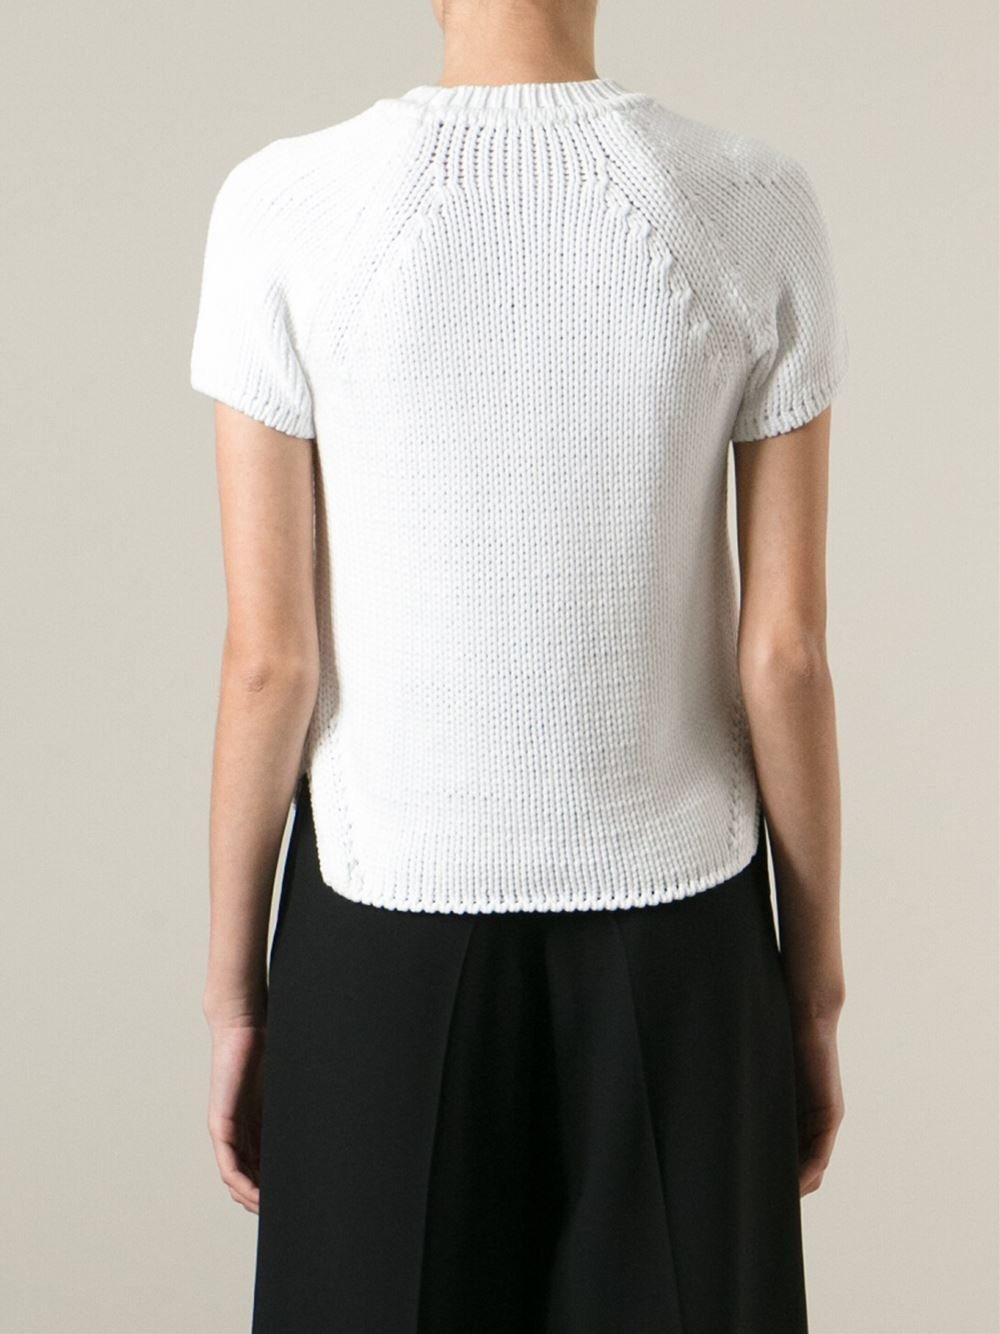 Odeeh Short Sleeve Sweater in White | Lyst